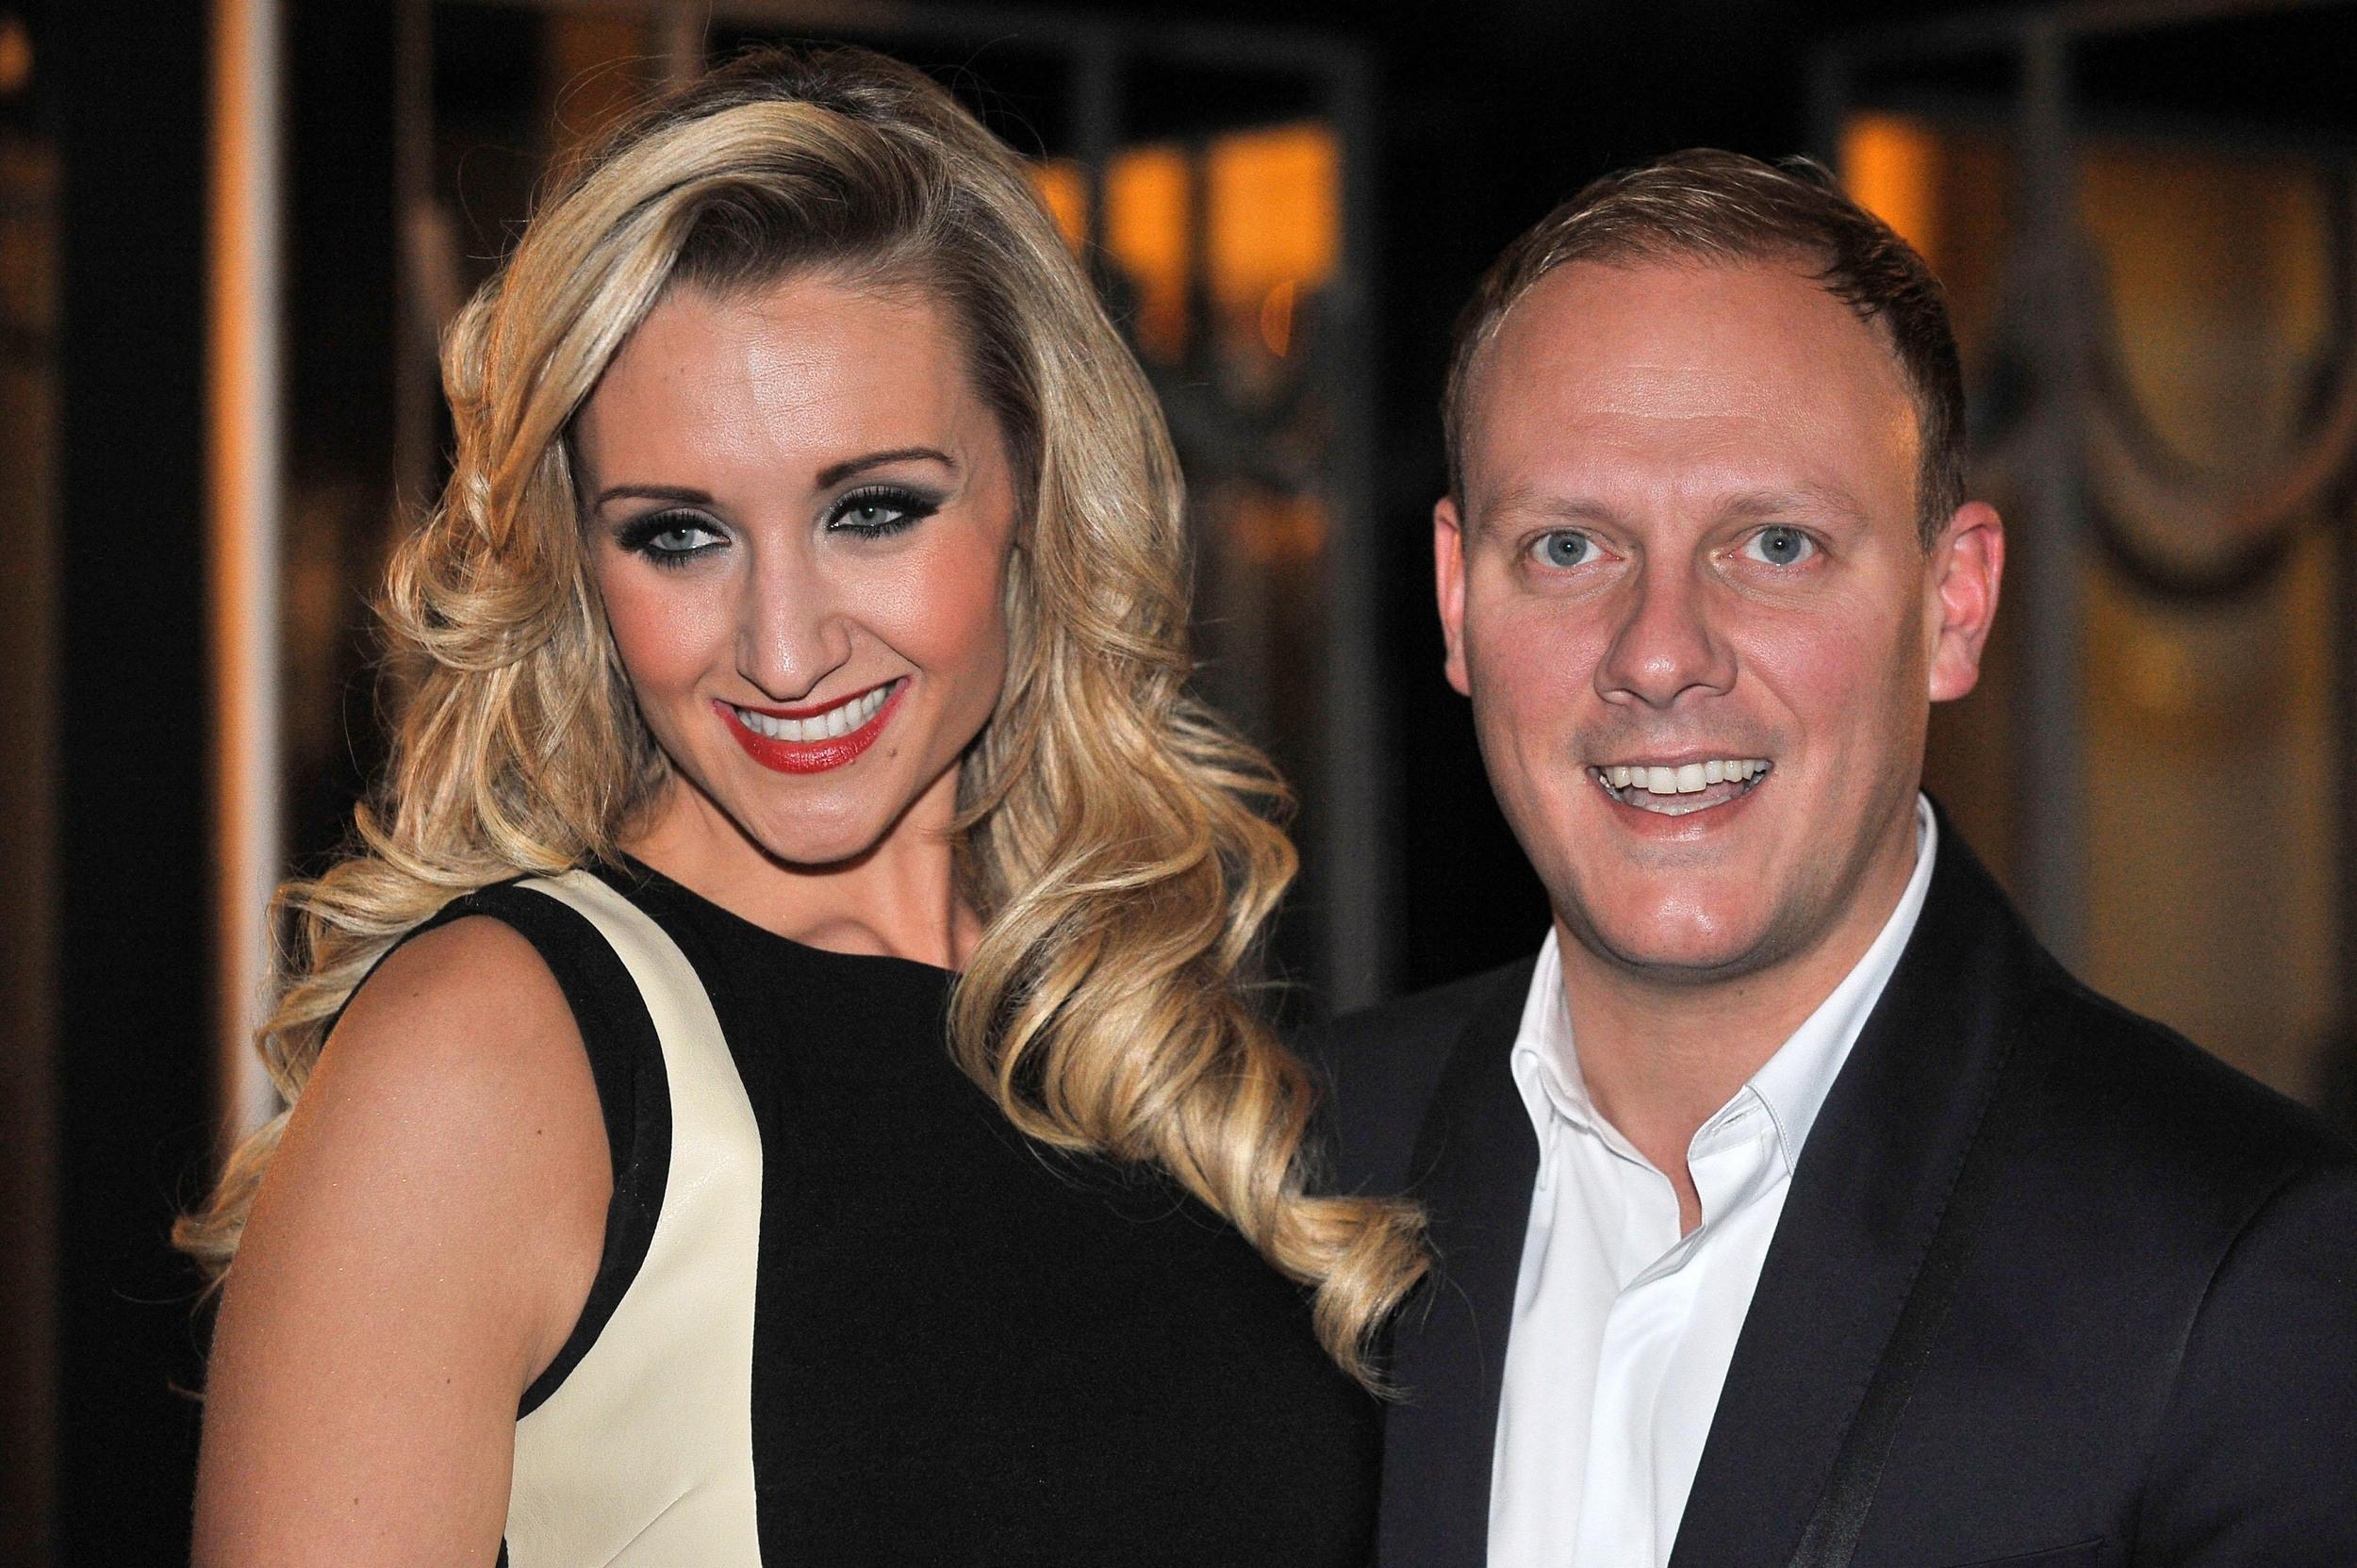 Antony Cotton (right) and Catherine Tyldesley arrive for the Radio Times Covers Party, at Claridges Hotel, London.